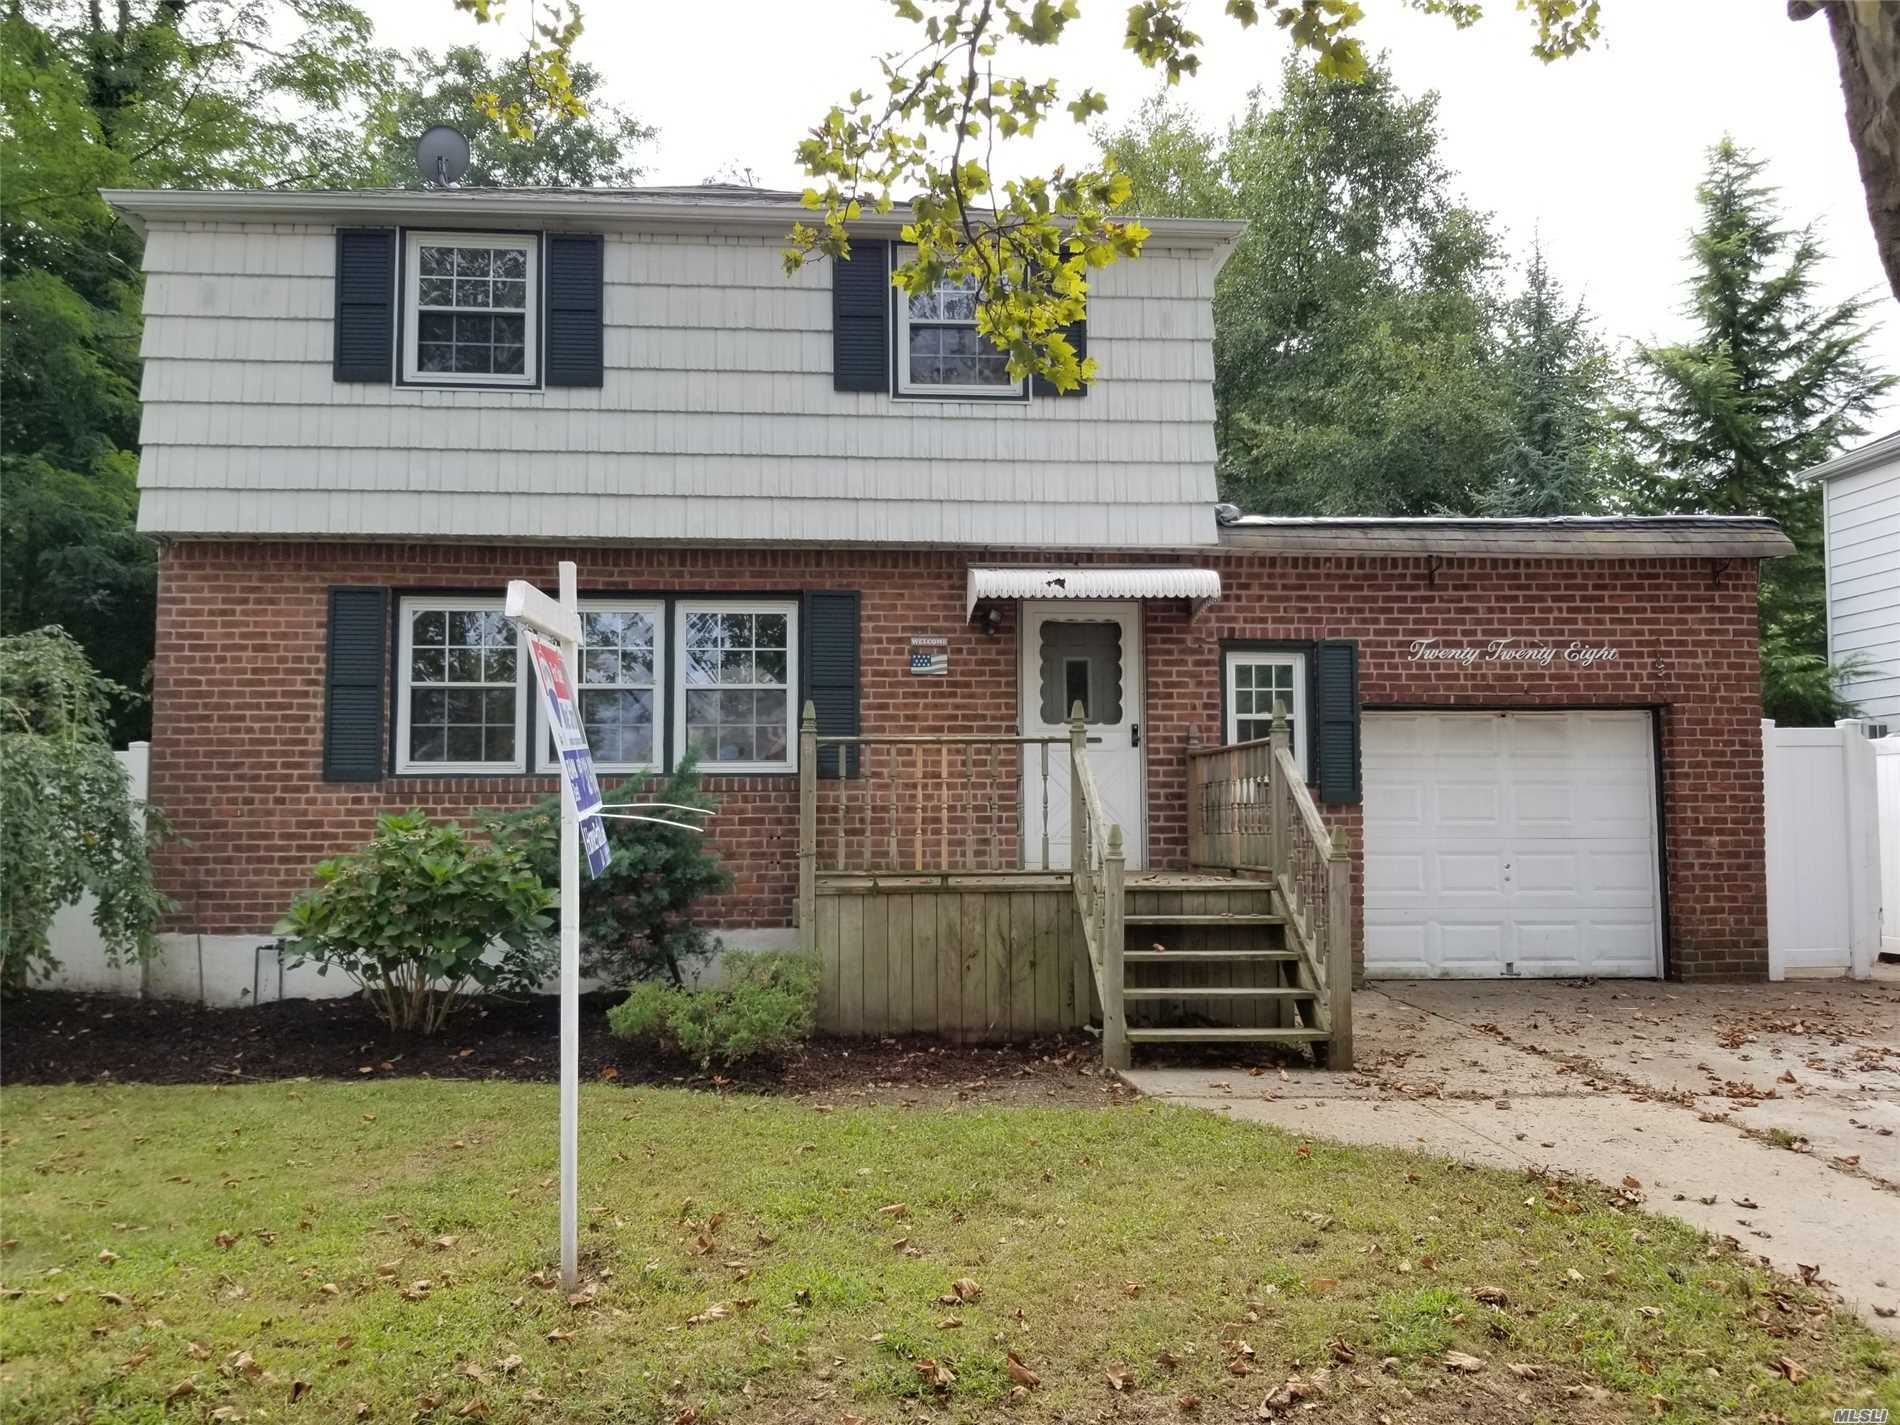 This Is A Fannie Mae Homepath Property. Large Colonial With 7 Rooms 4 Beds And 2 Baths. N. Merrick Schools. 1 Car Garage. Hardwood Floors, Separate Dining Area And Spacious Master Suite. Close To Shopping, Transportation And Major Roadways.